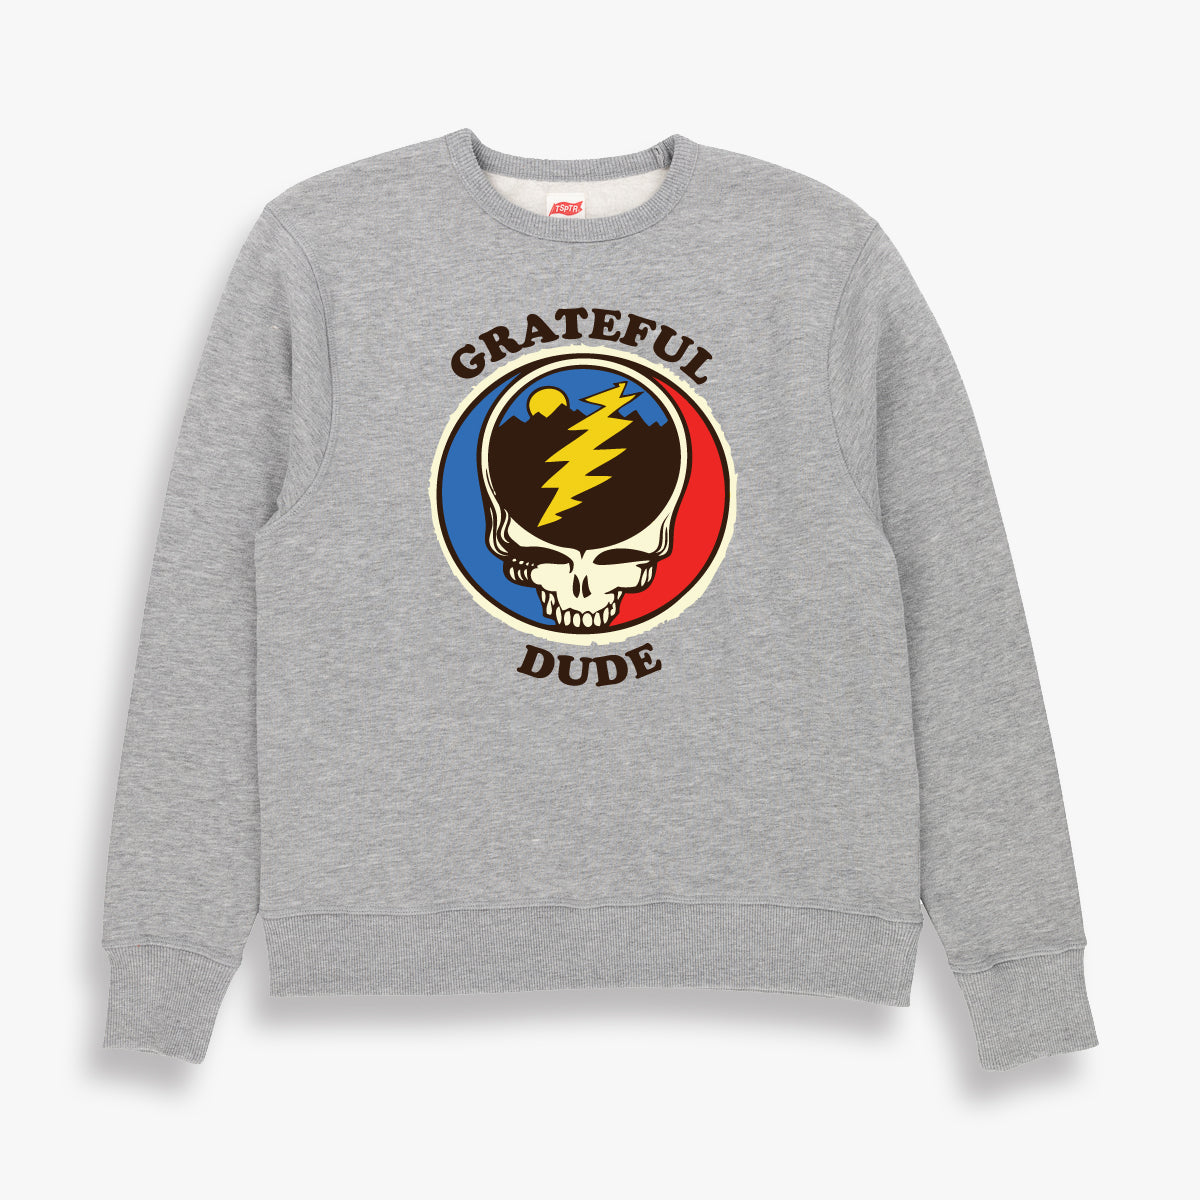 GRATEFUL DUDE SWEATSHIRT